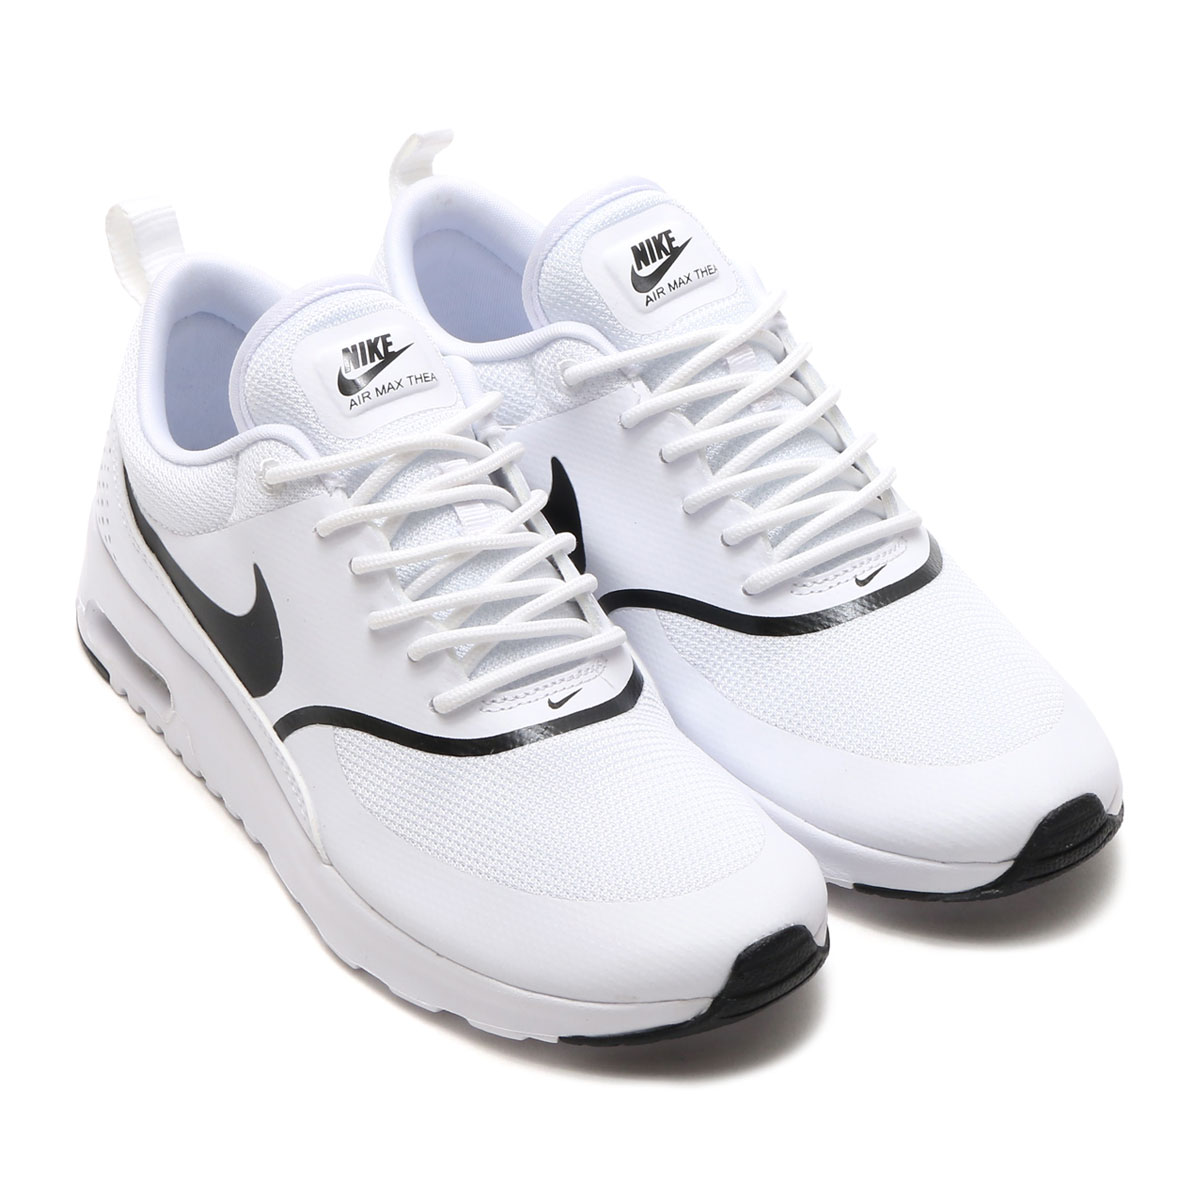 separation shoes 0b803 e6aef  This product is a product impossible of cancellation. As you cannot accept  returned goods, the exchange after cancellation, the resize after the order  and ...